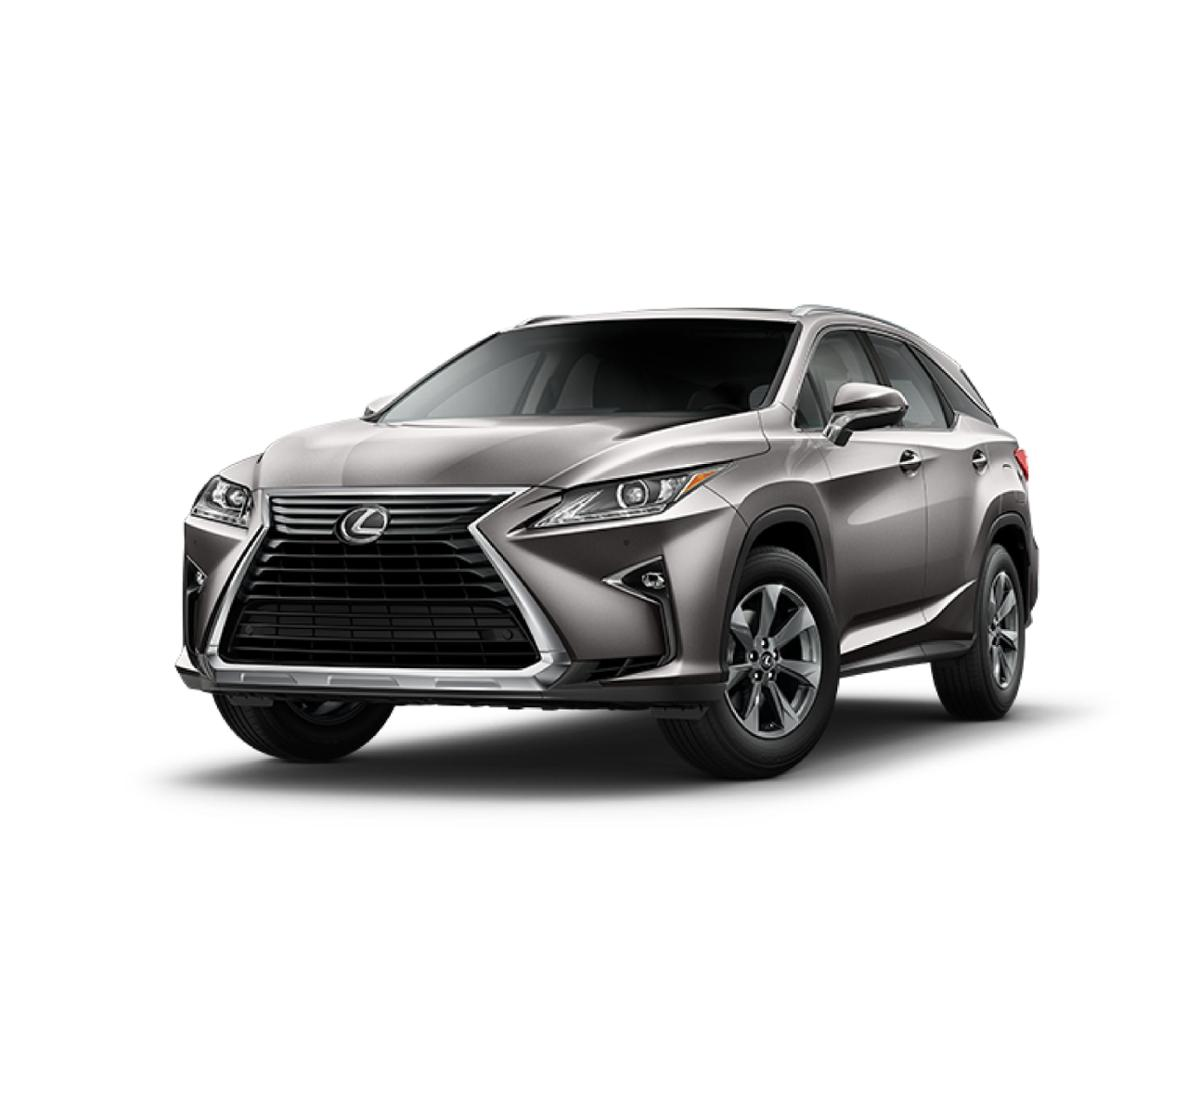 2018 Lexus RX 350L Vehicle Photo in Danvers, MA 01923